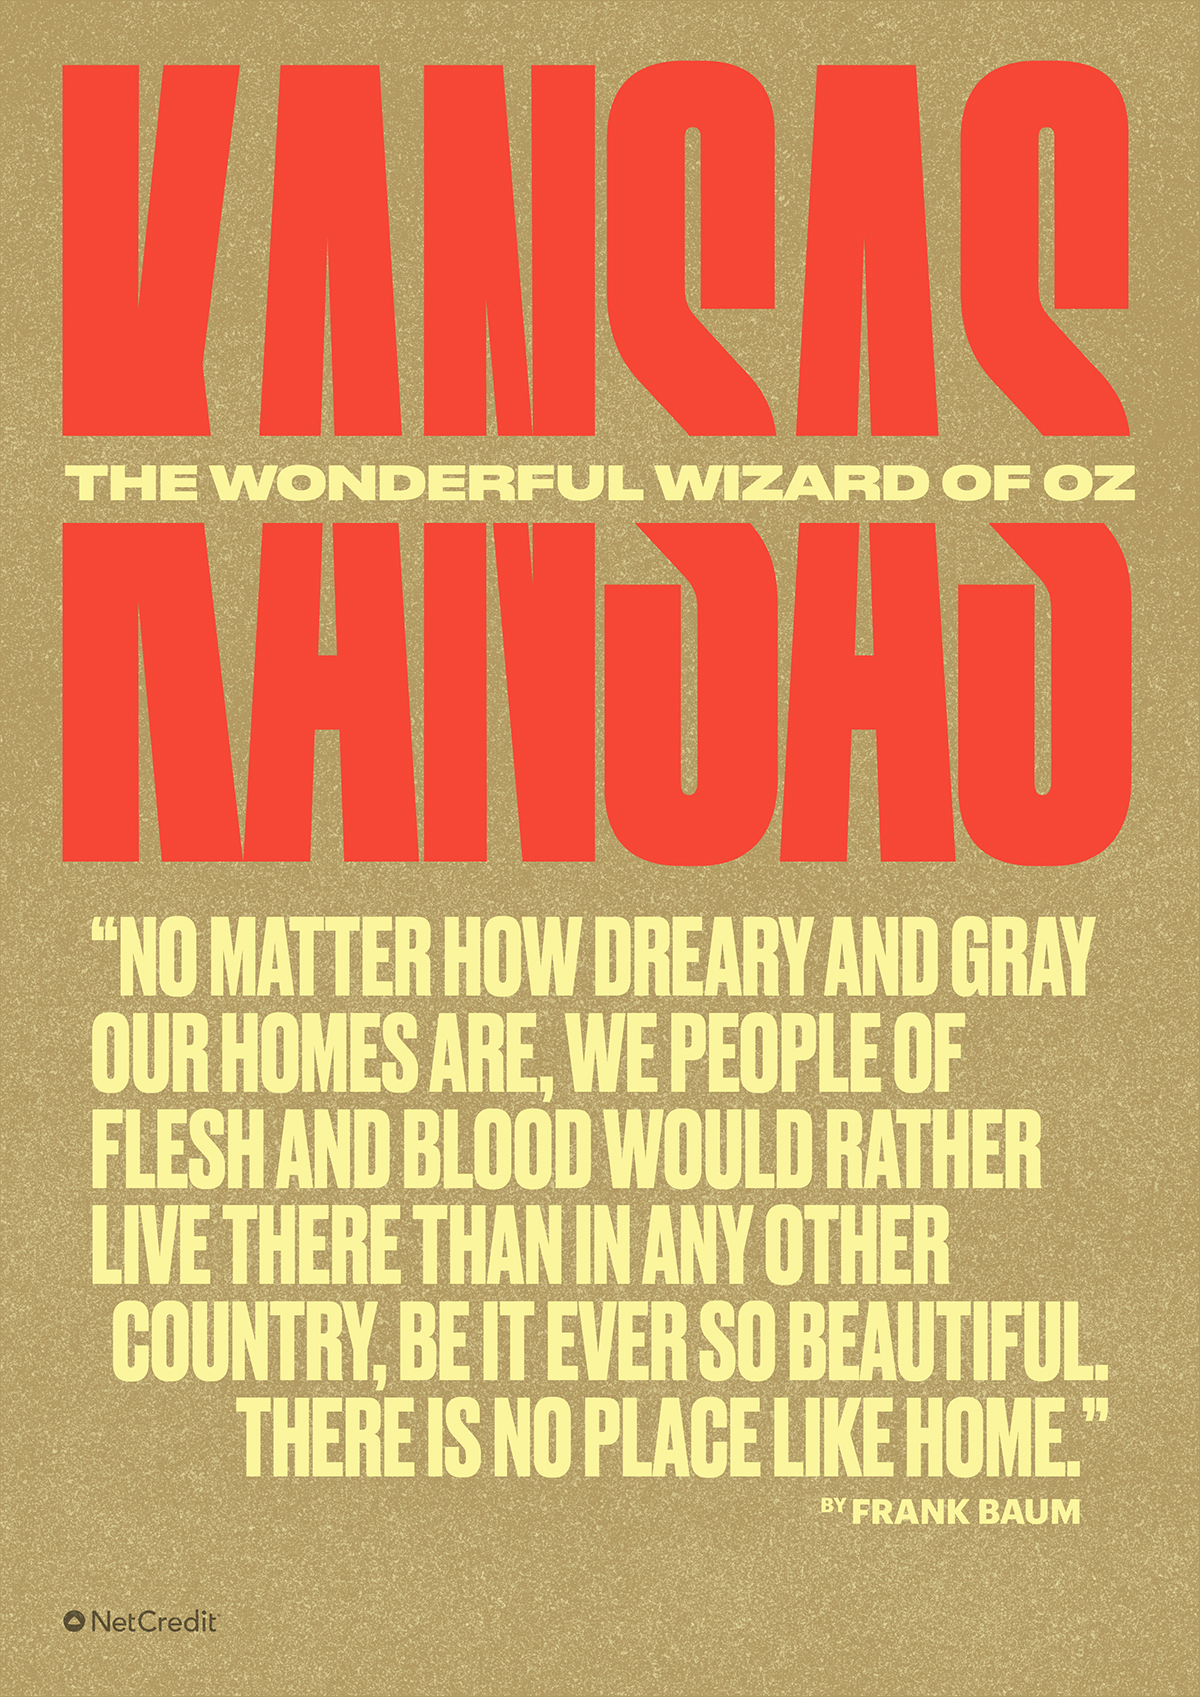 Wonderful Wizard of Oz Kansas